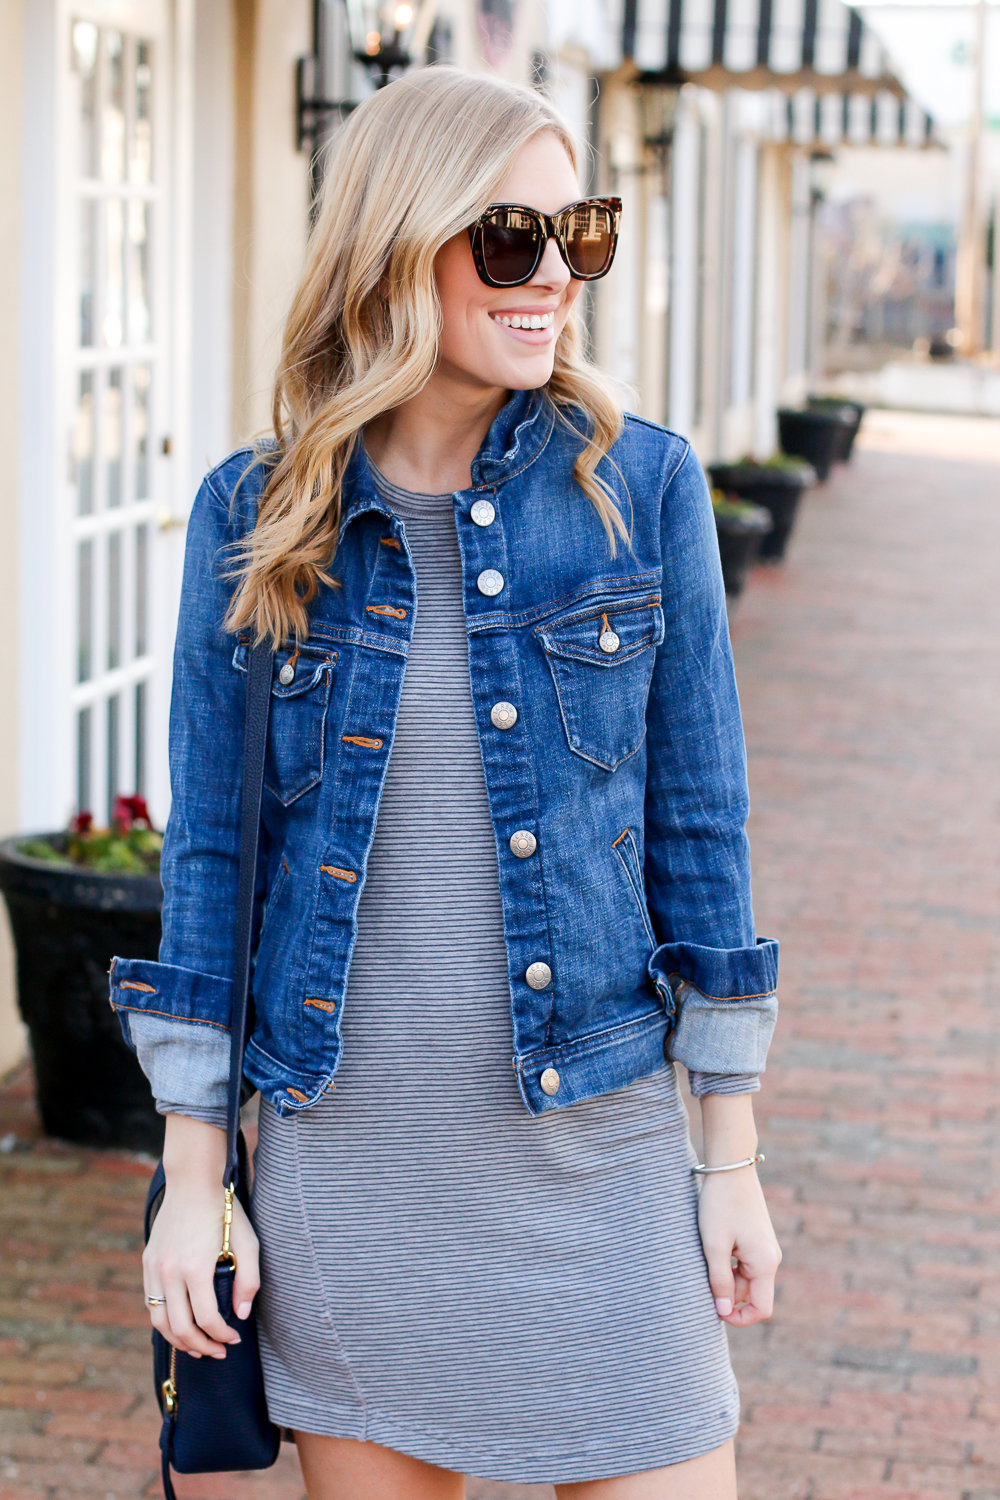 a919fefbe01 LOU & GREY STRIPED DRESS | J.CREW DENIM JACKET | ADIDAS STAN SMITH SNEAKERS  | PHILLIP LIM MINI PASHLI BAG | TIFFANY & CO PEARL EARRINGS (SIMILAR HERE)  ...